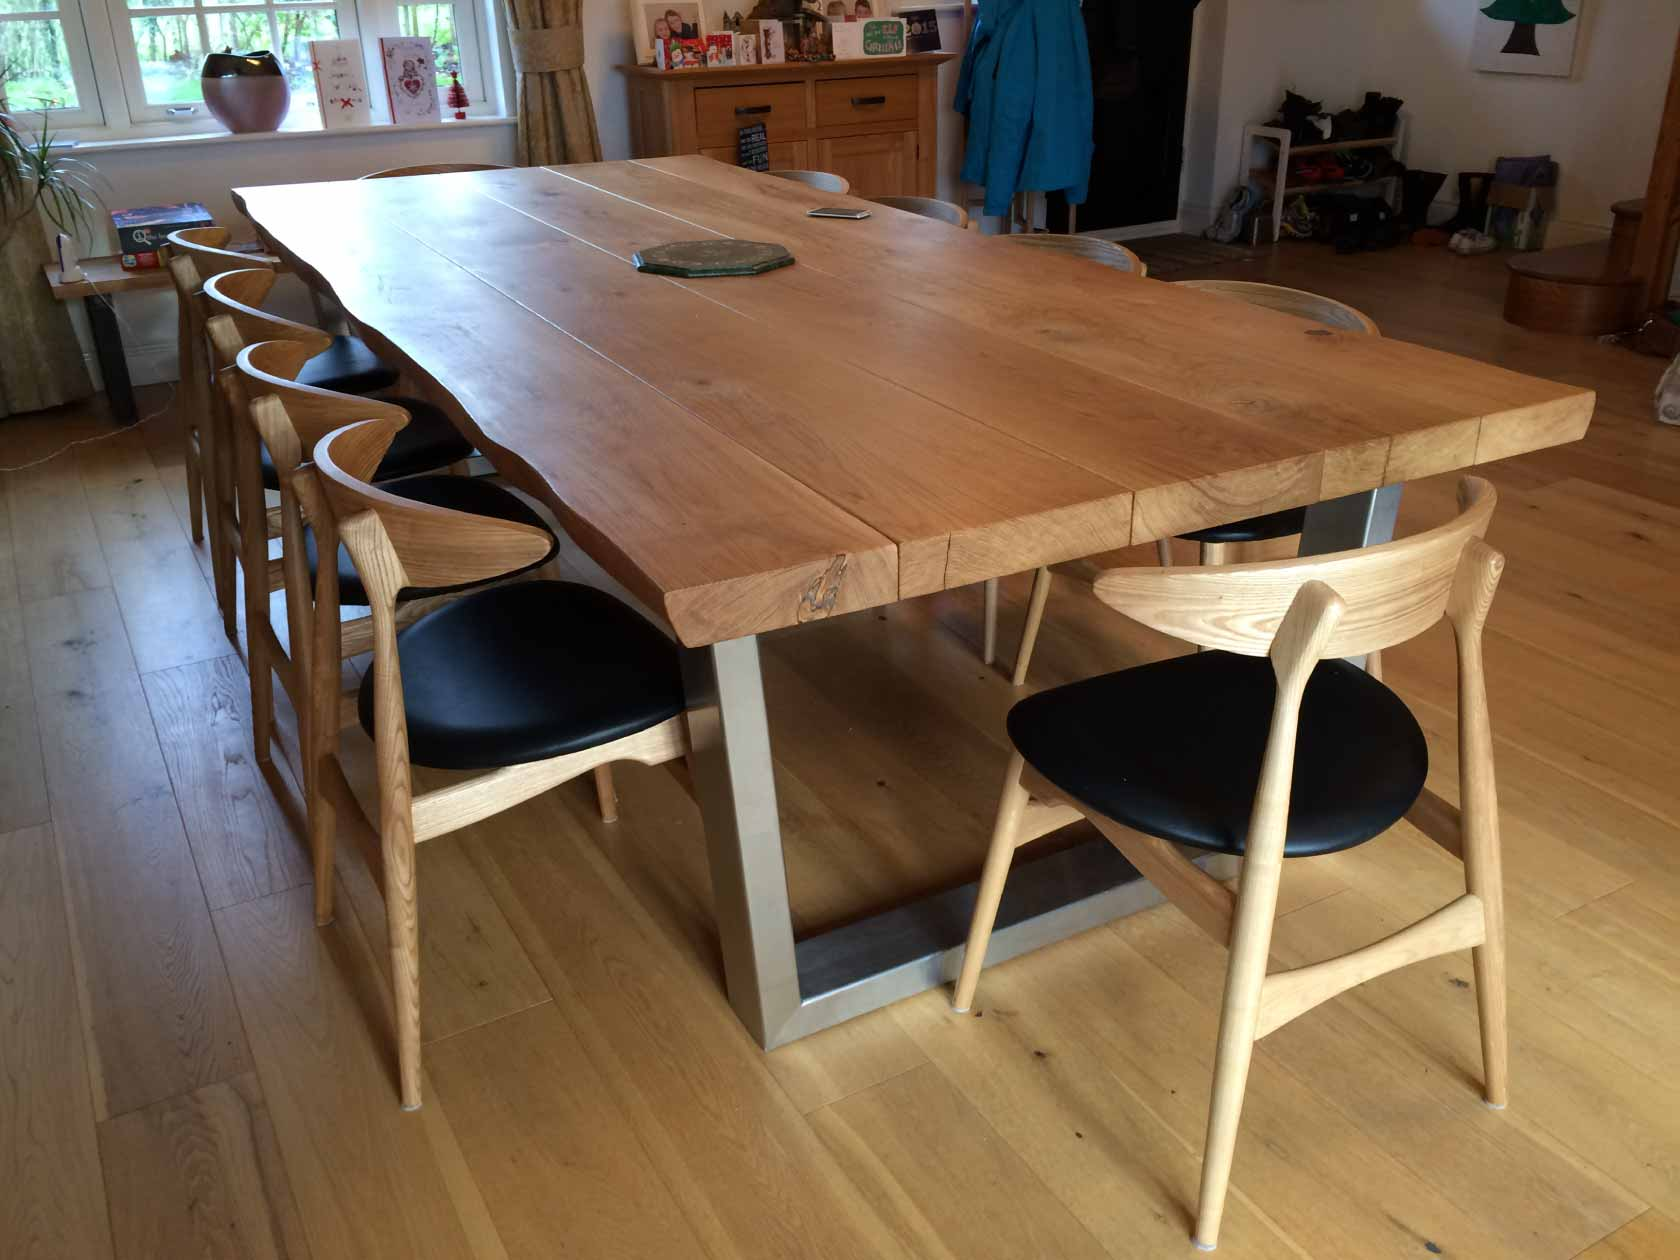 Rustic Dining Table From Abacus Tables 3m X